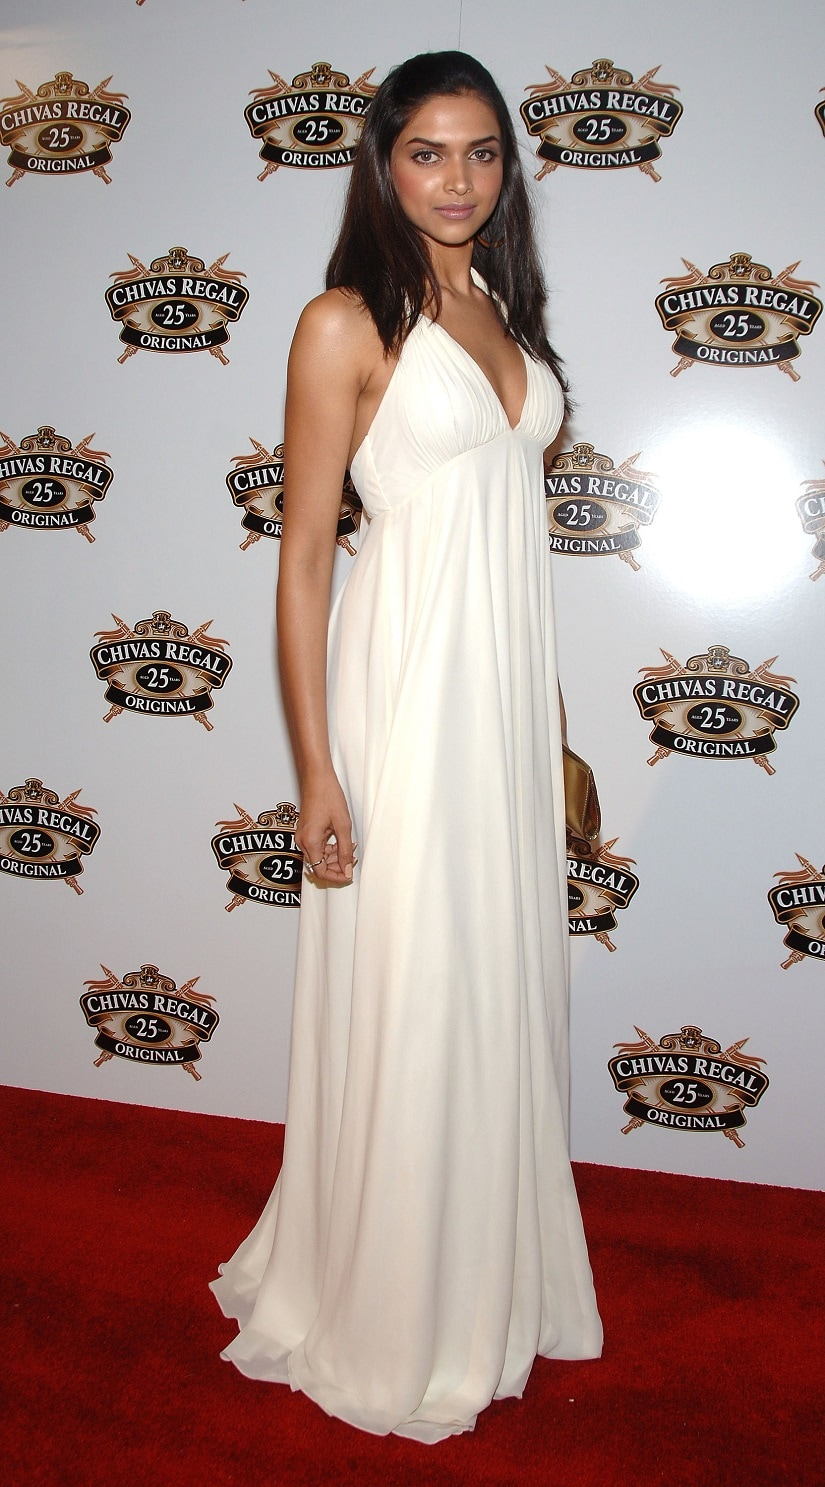 Deepika Padukone at an event marking Chivas Regal 25 Year Old's return to New York City. Image from Getty Images.